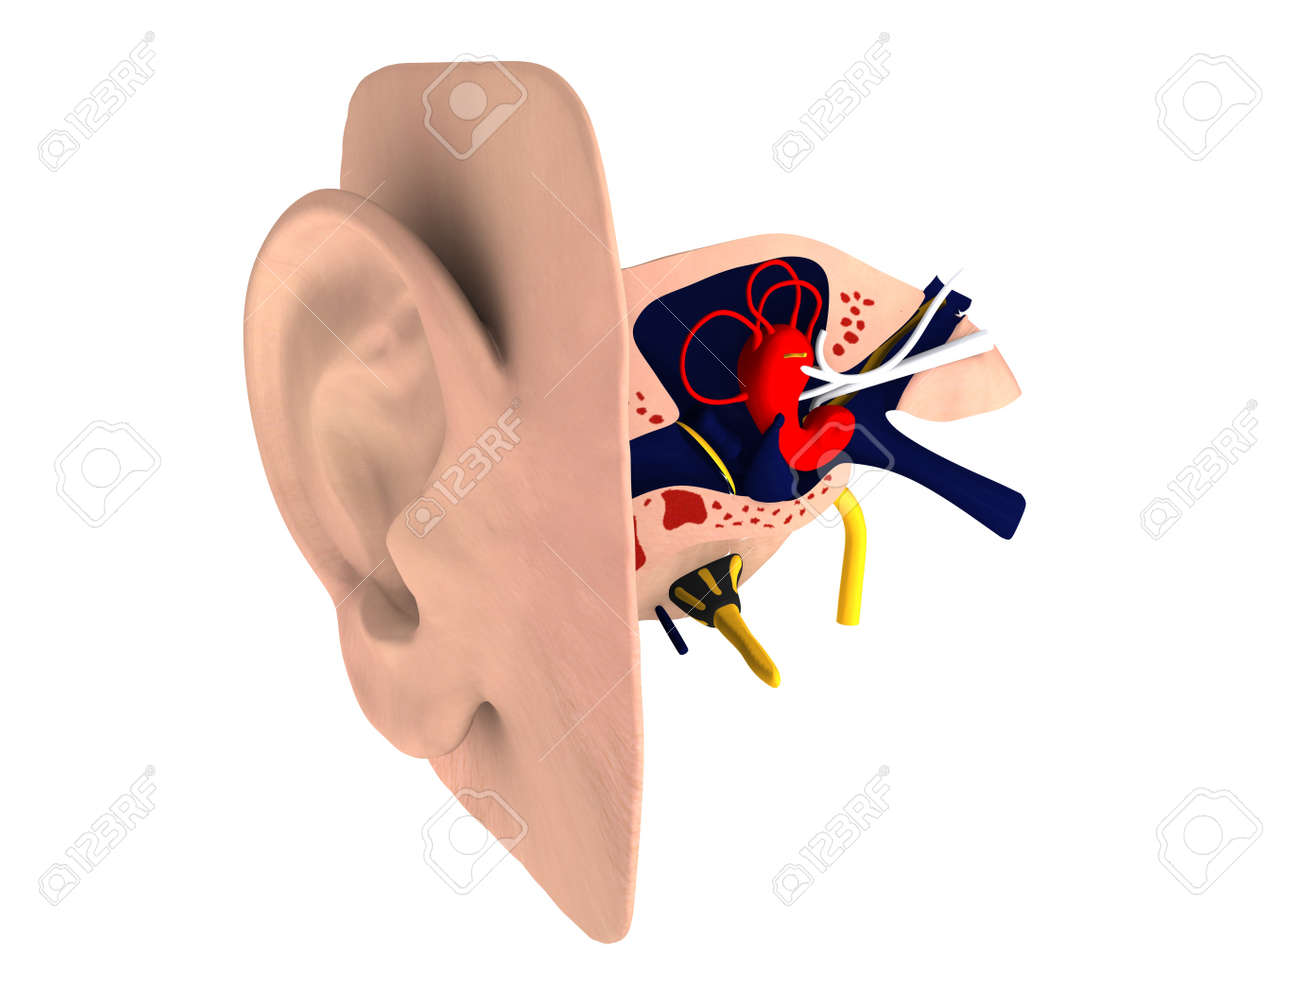 Human ear c Anatomy Stock Photo - 16774353